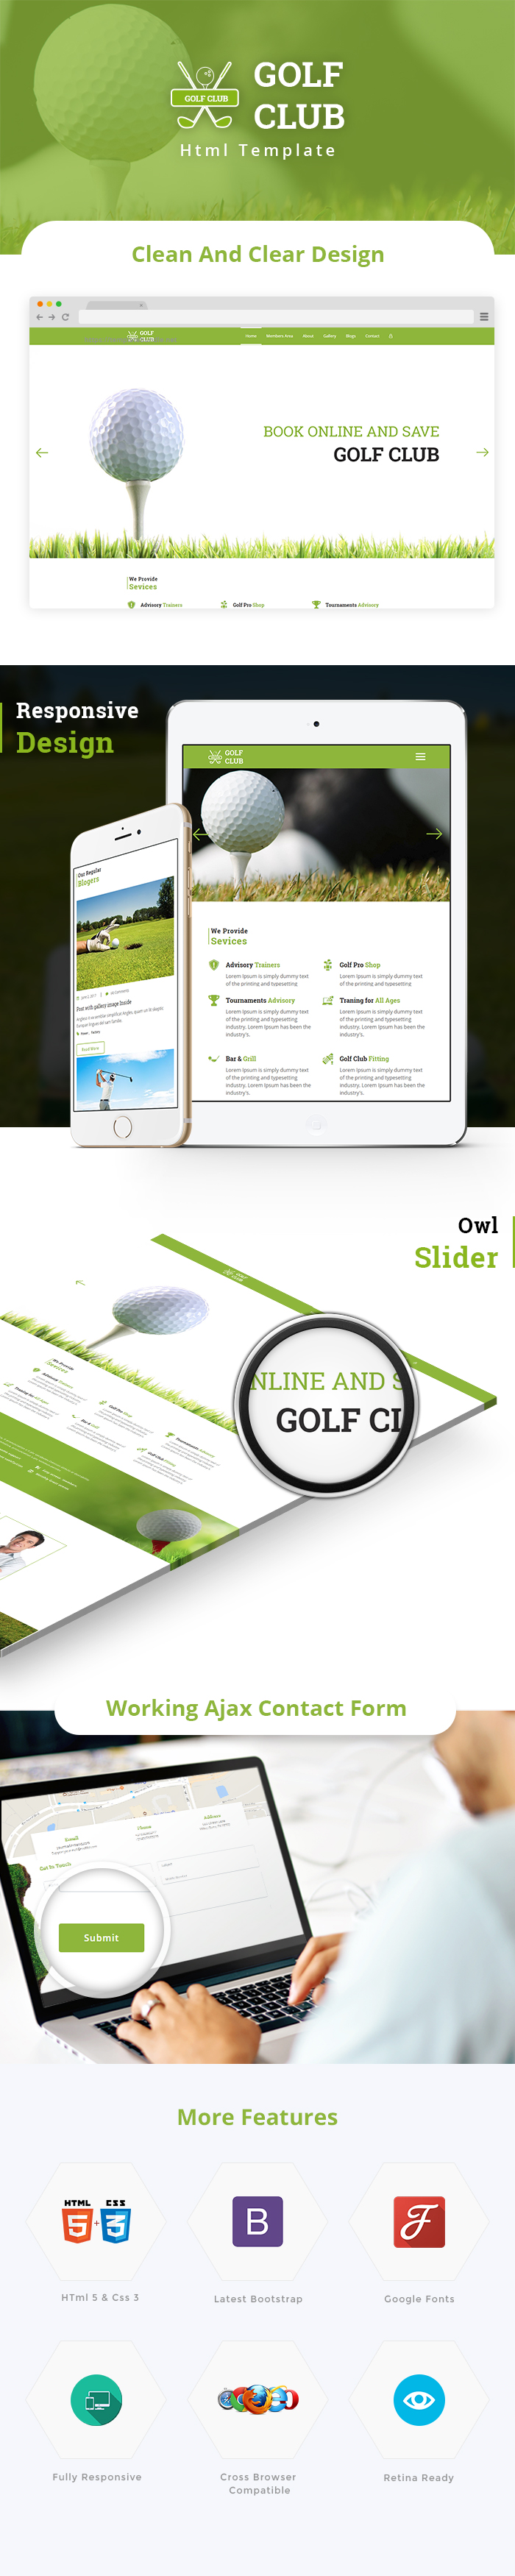 Golf Club HTML Website Templates